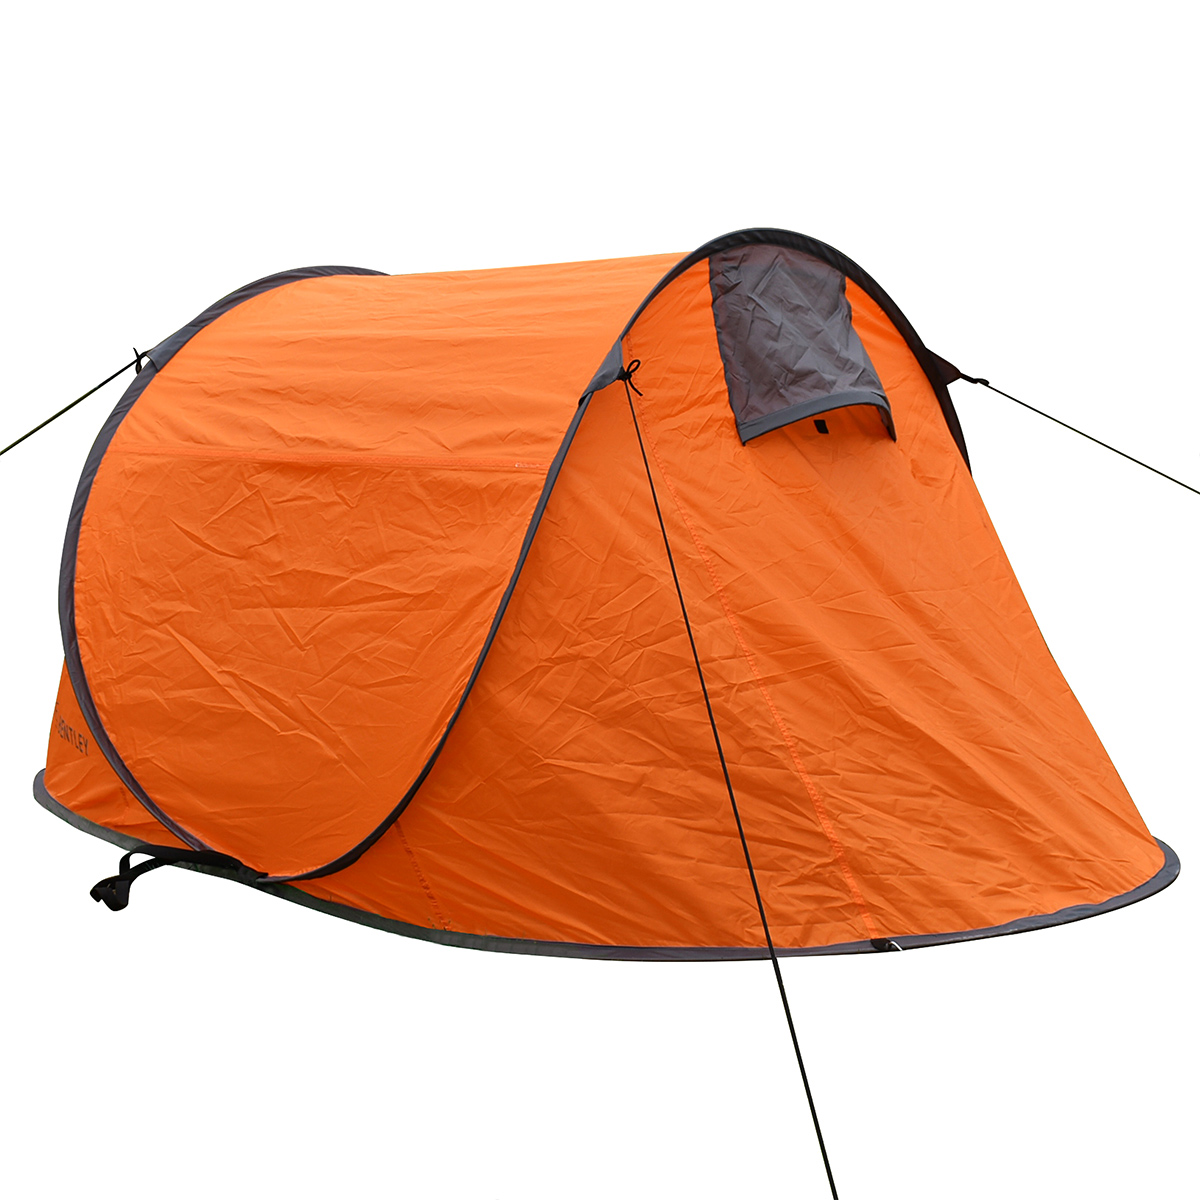 Charles-Bentley-2-Person-Two-Man-C&ing-Instant-  sc 1 st  eBay & Charles Bentley 2 Person Two Man Camping Instant Pop Up Tent ...